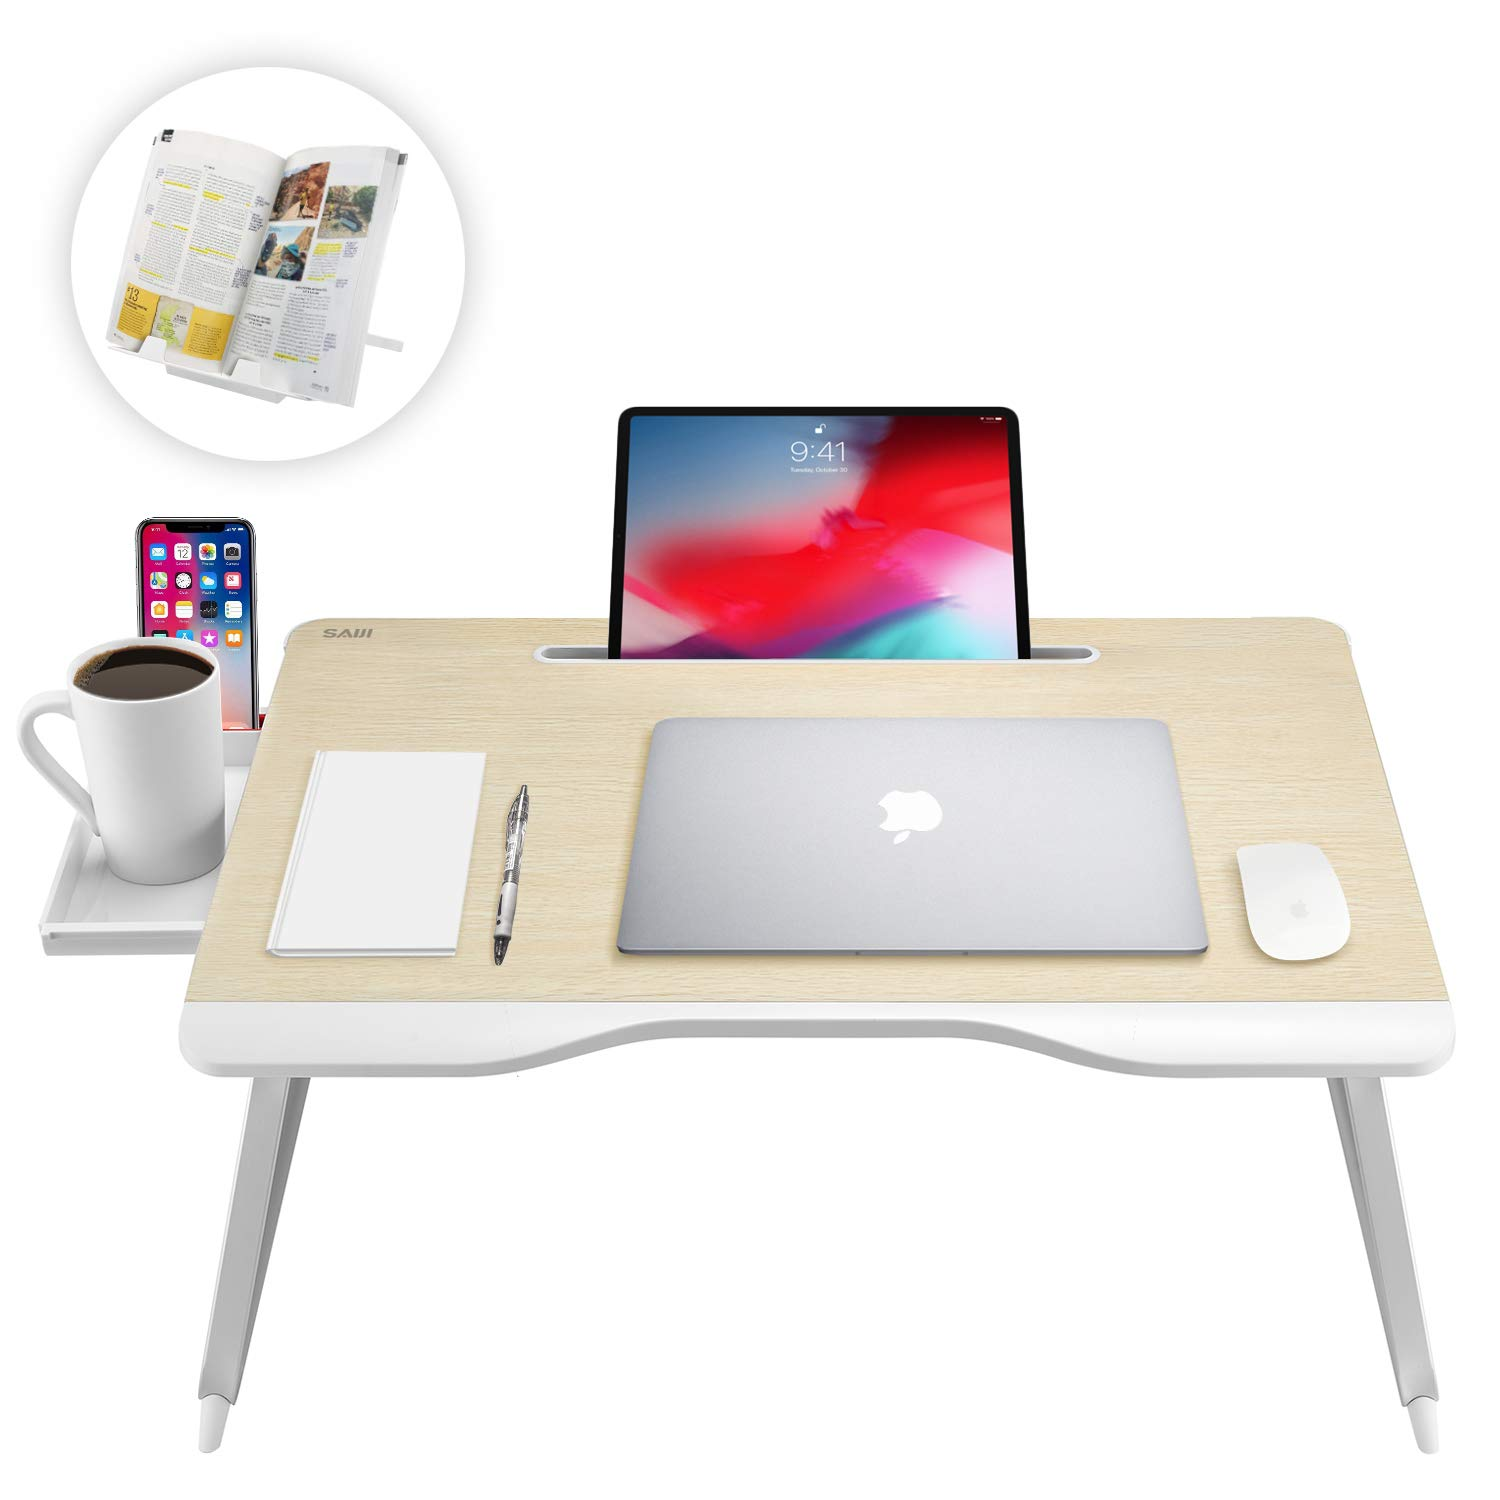 Saiji Multi-Function Laptop Desk Table, with Handrest Bookstand, Tablet Stand, Phone Stand, Storage Drawer, Cup Holder, for Bed Sofa Couch Carpet Floor (Oak)